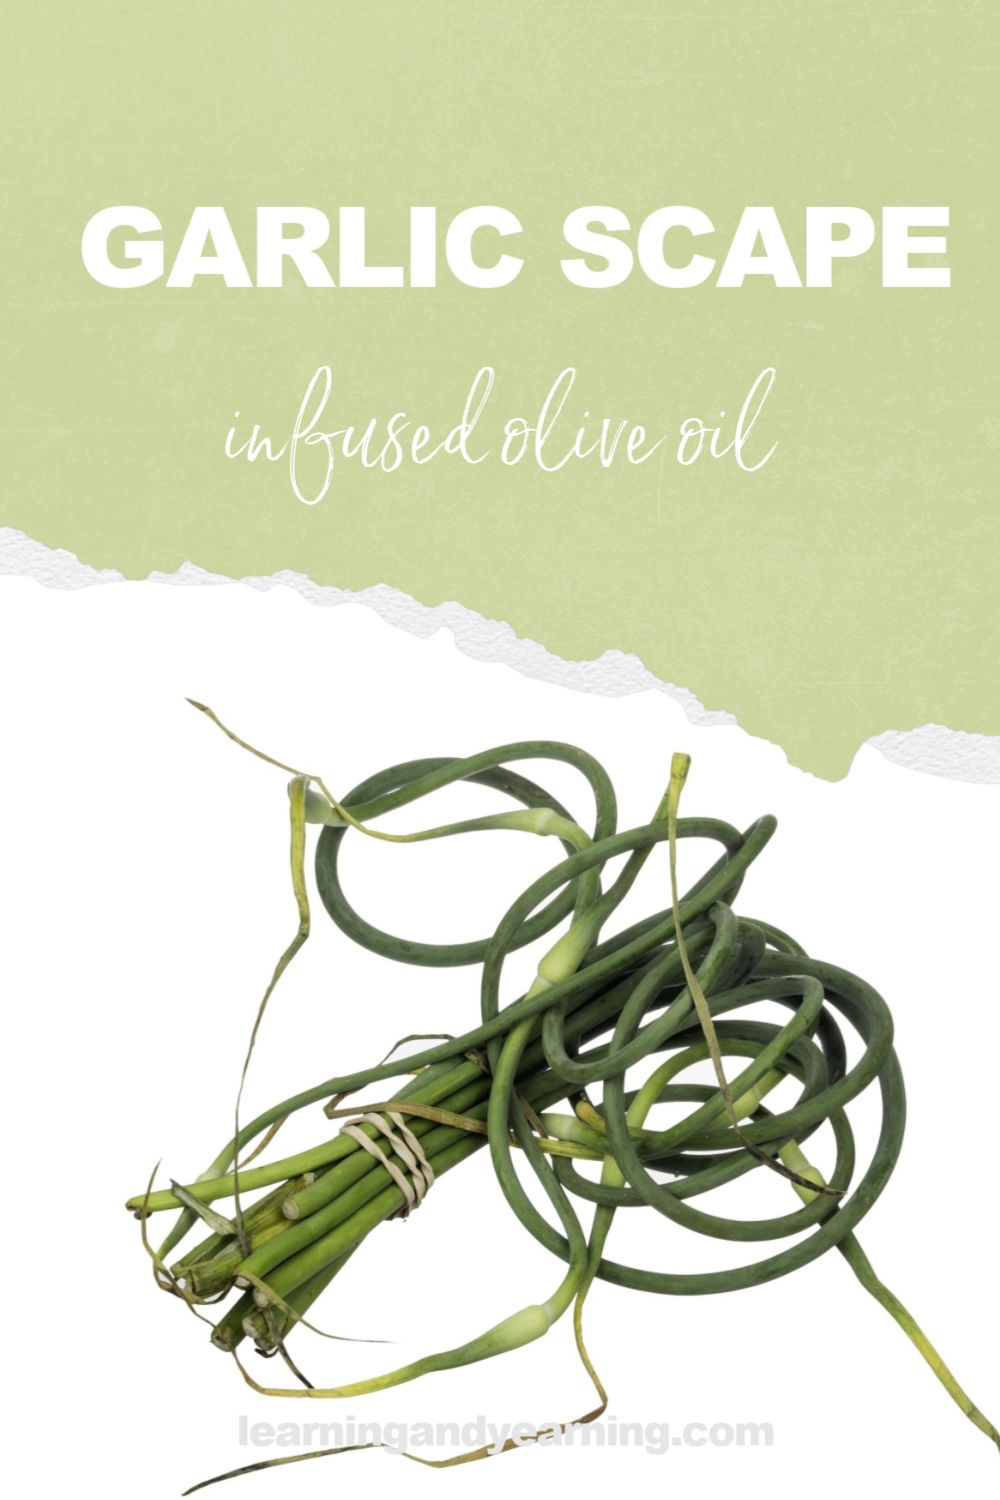 How to make garlic scape infused olive oil